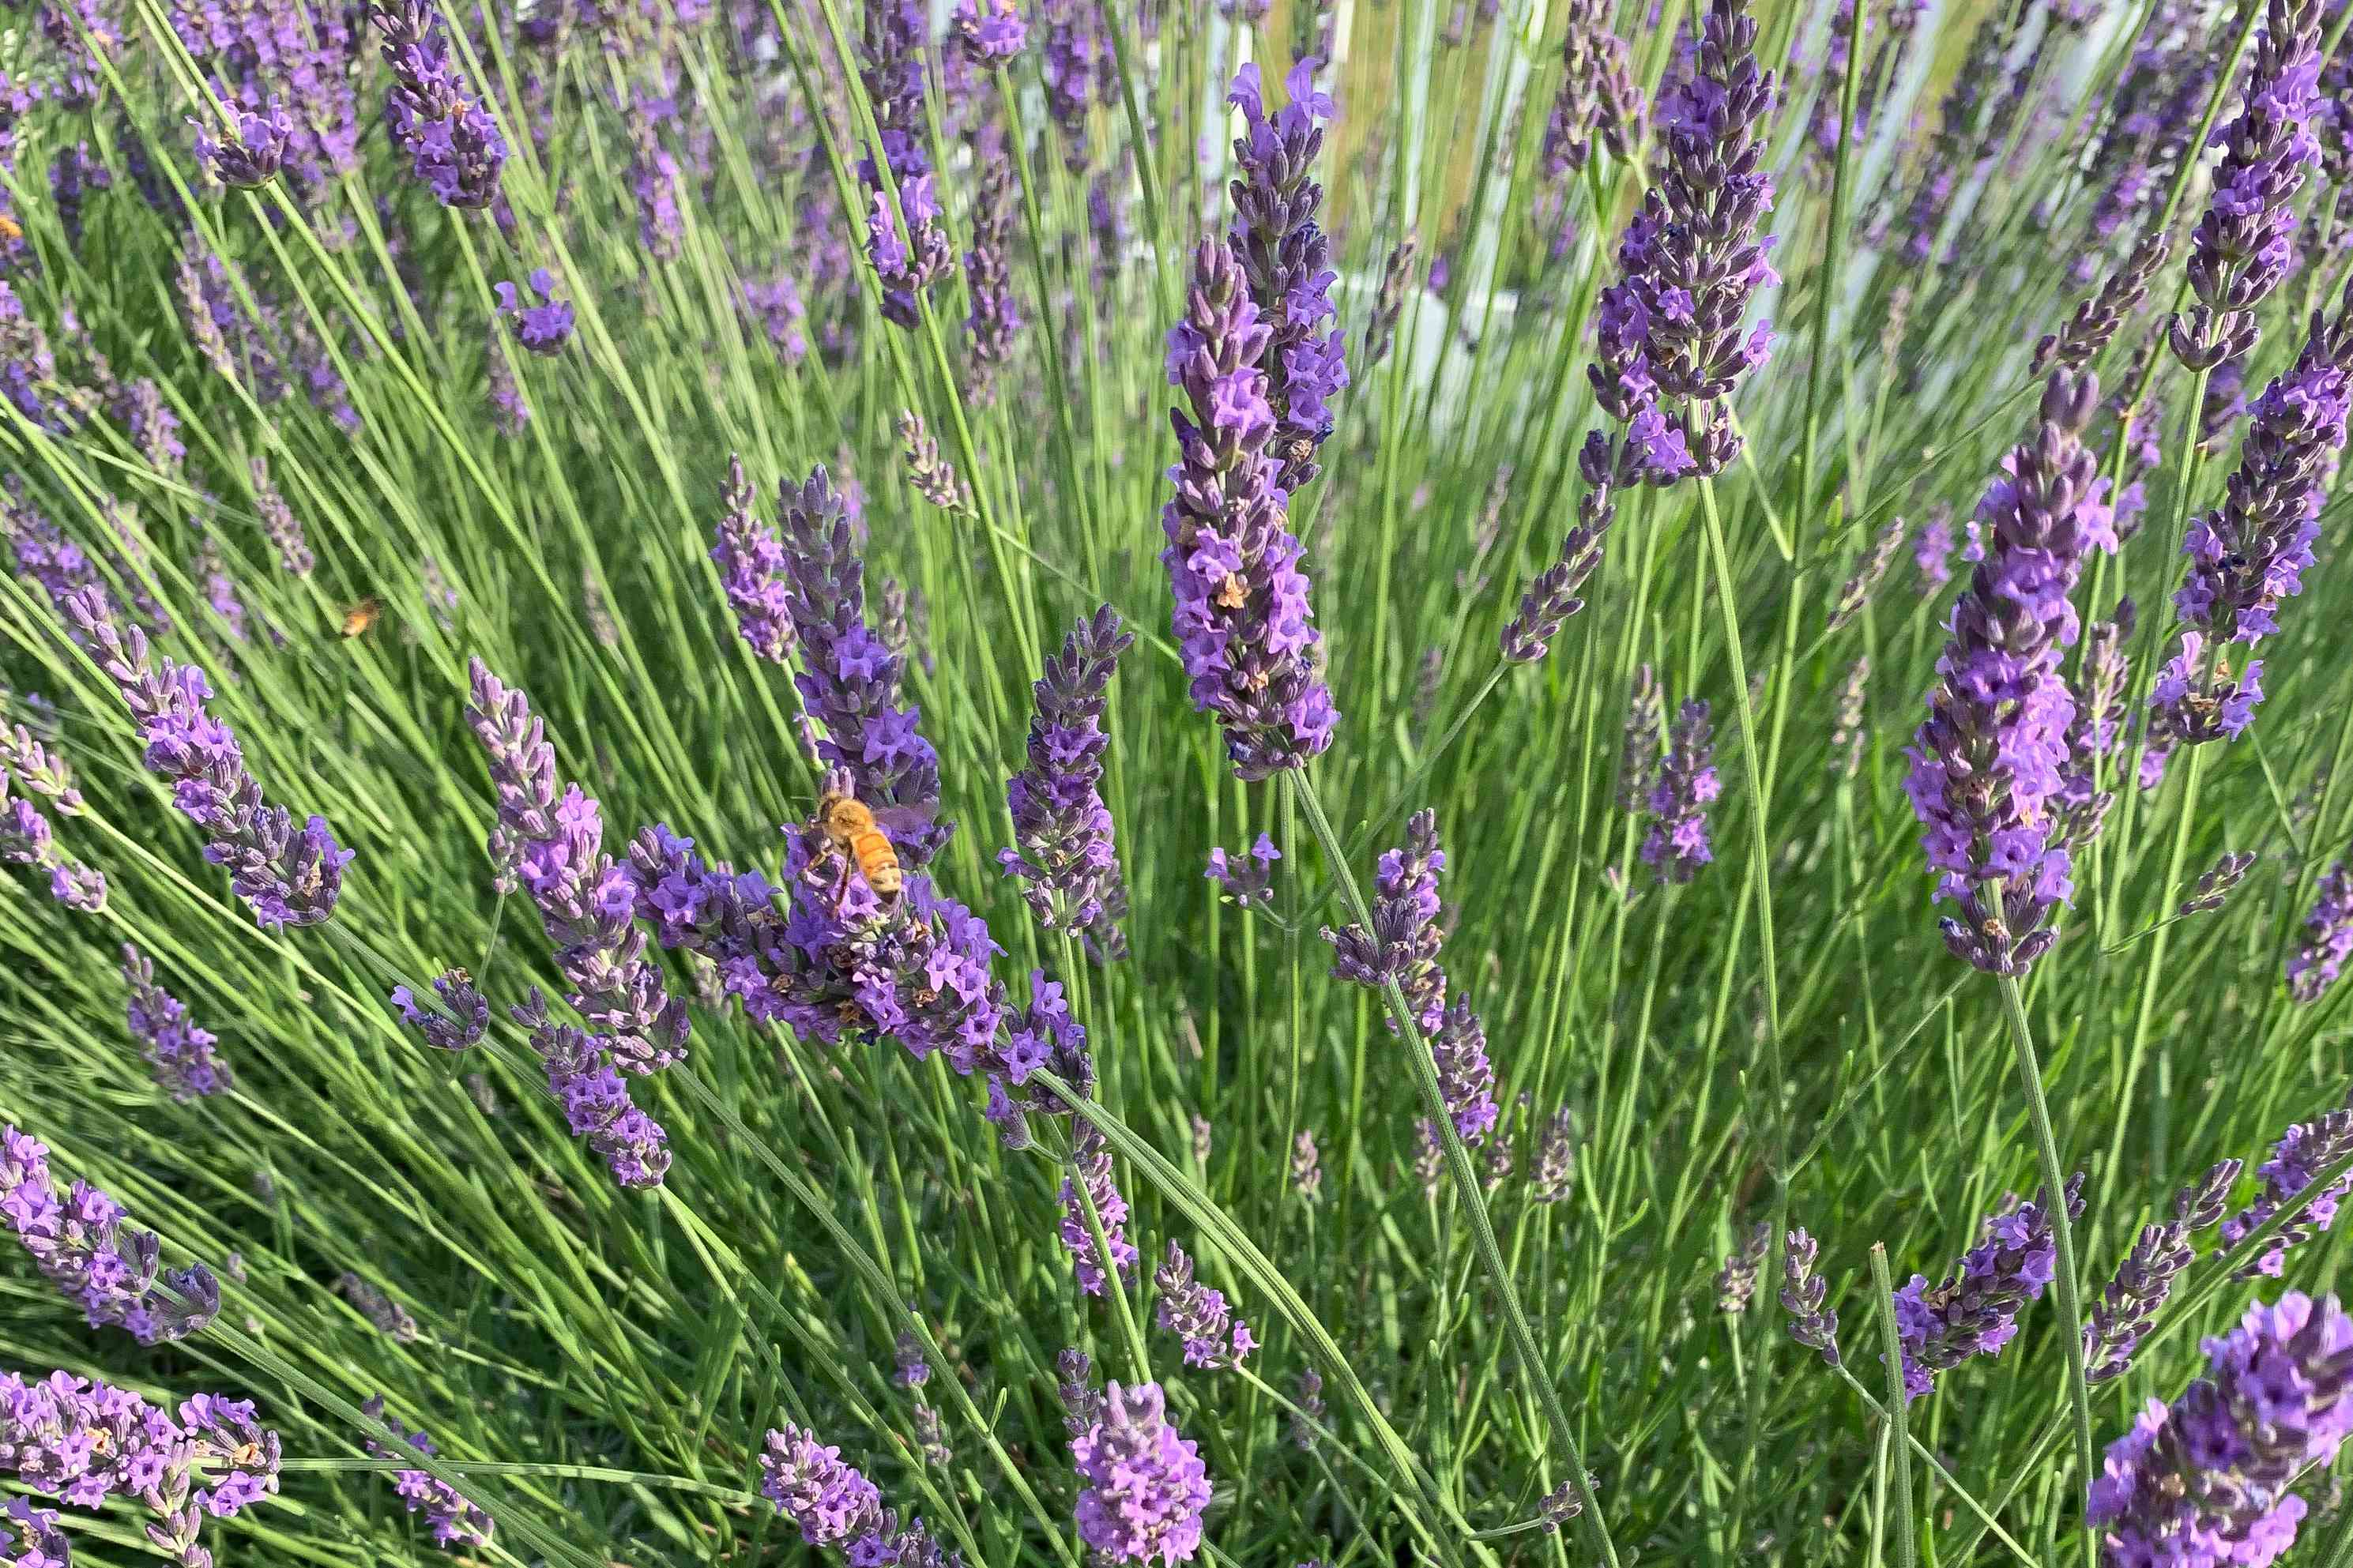 Lavender plant with small purple flowers on end of thin stems clustered together with bee on top